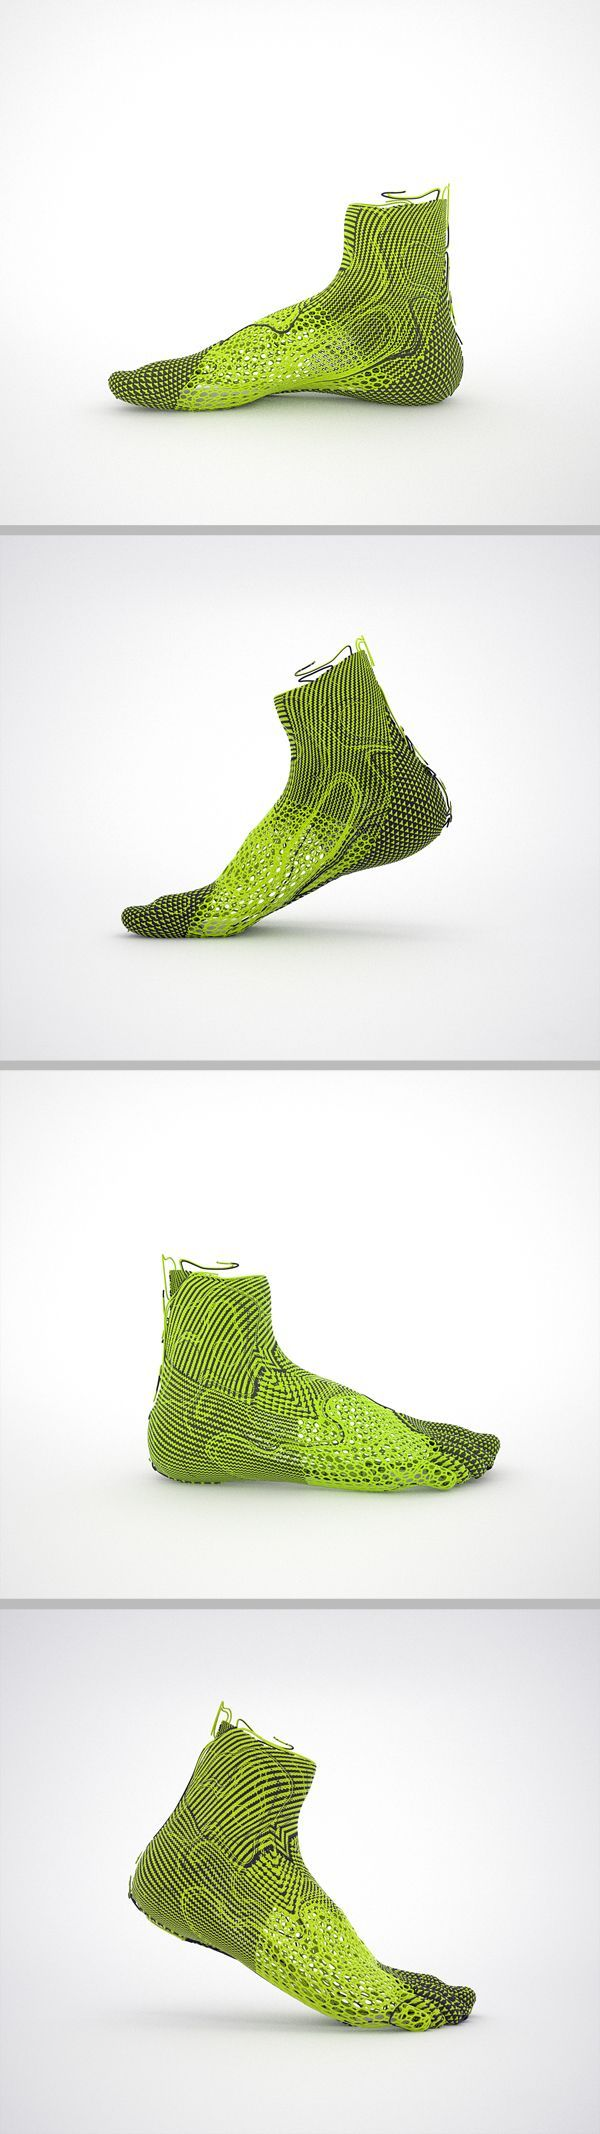 Nike Flyknit Render, green black, fabric, knitted, wrap, support